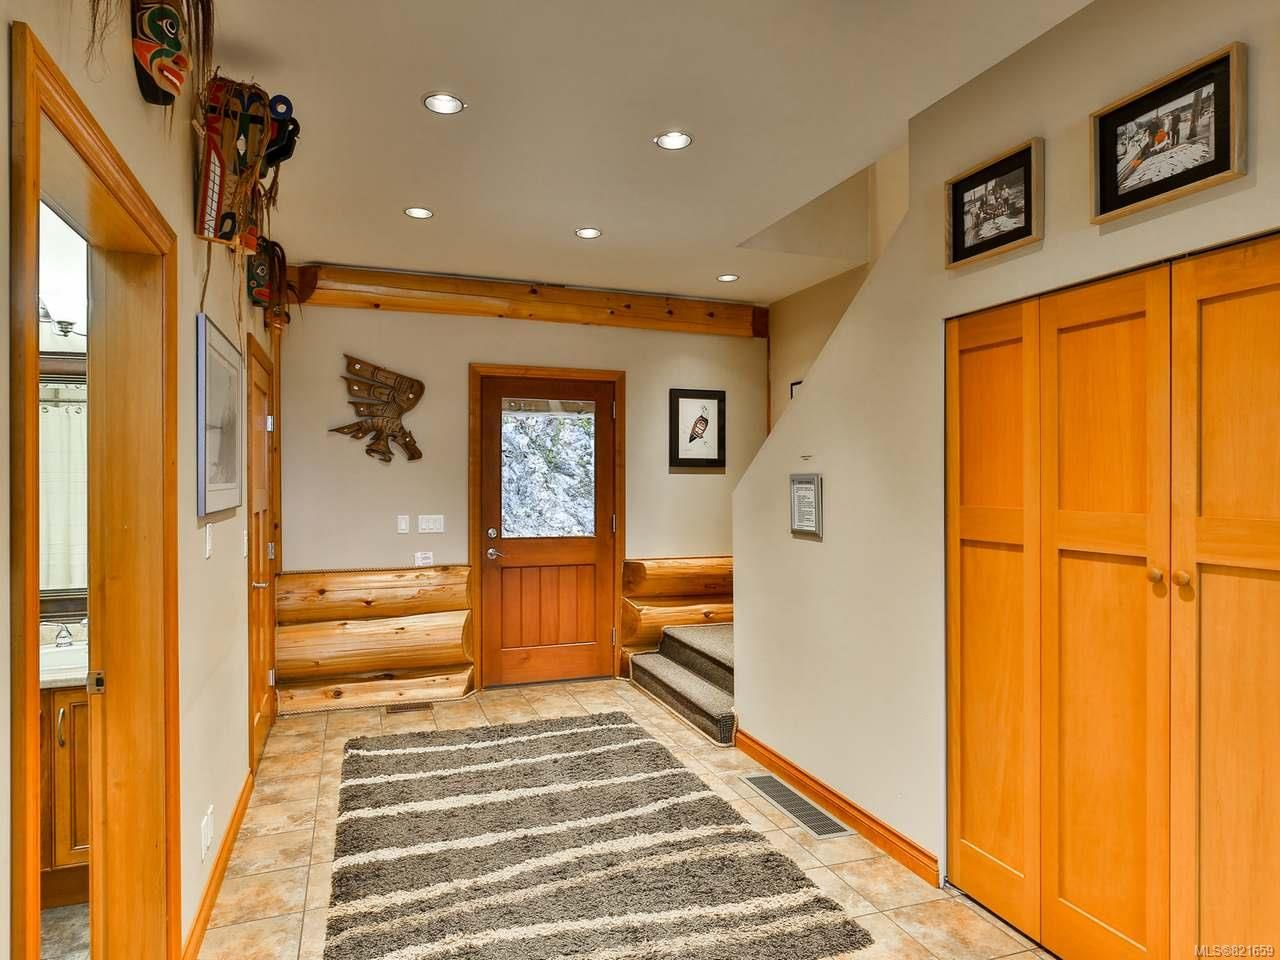 Photo 3: Photos: 1049 Helen Rd in UCLUELET: PA Ucluelet House for sale (Port Alberni)  : MLS®# 821659